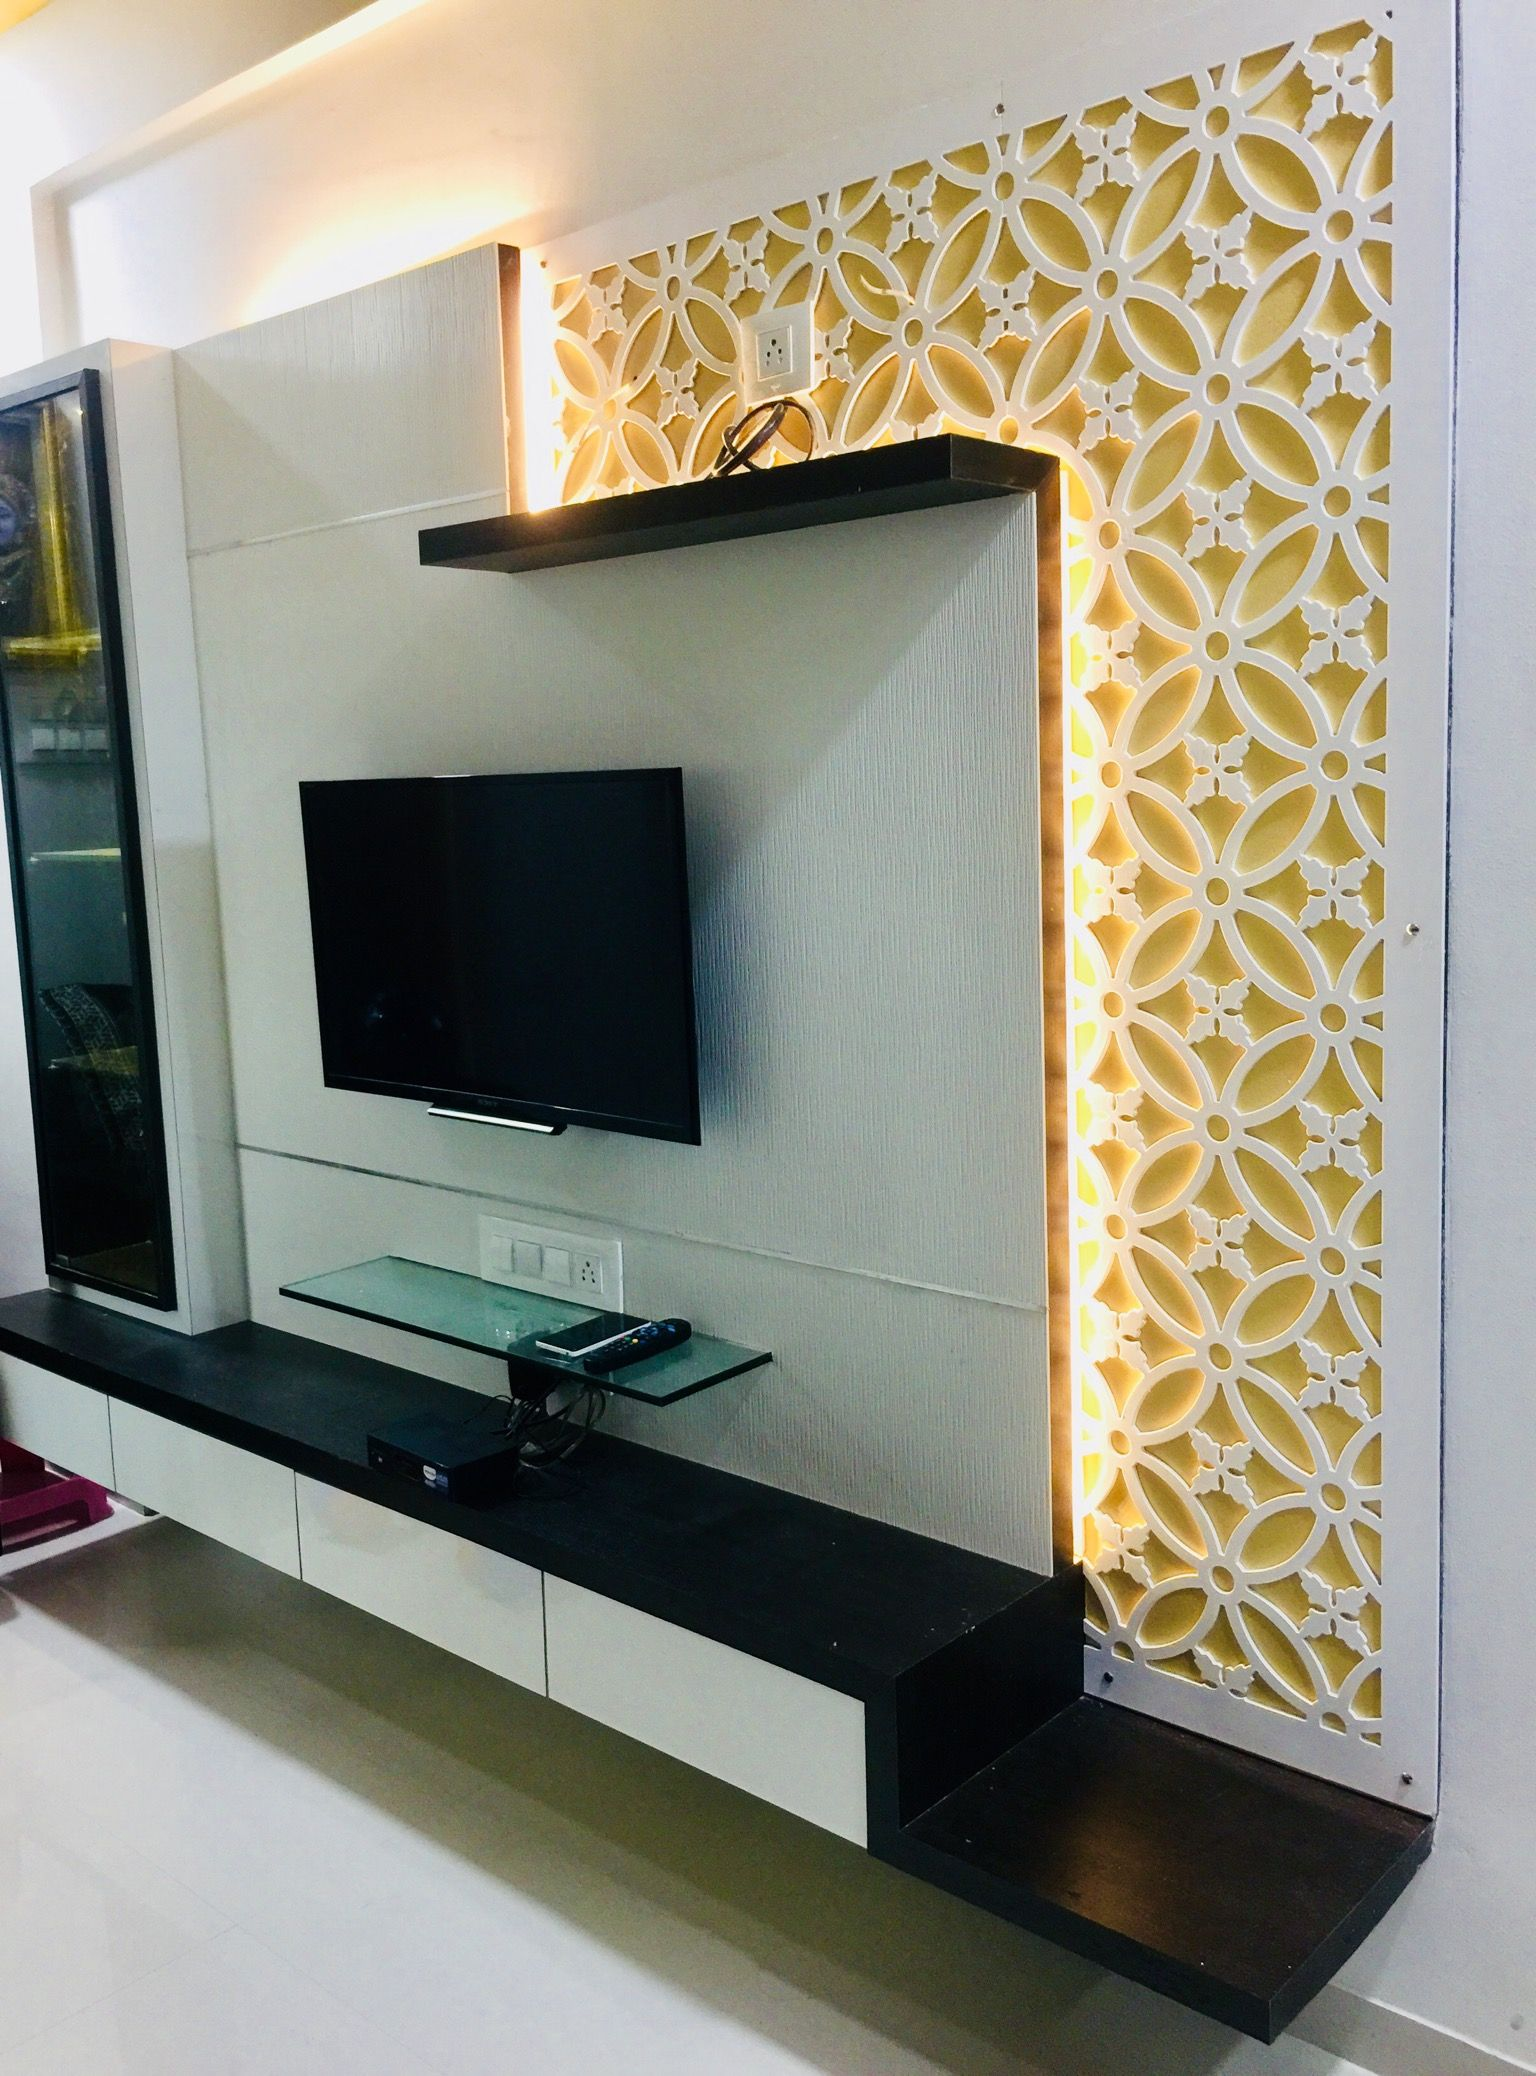 Latest Tv Unit Design: Pin By MOsTA On Ceiling Light Design